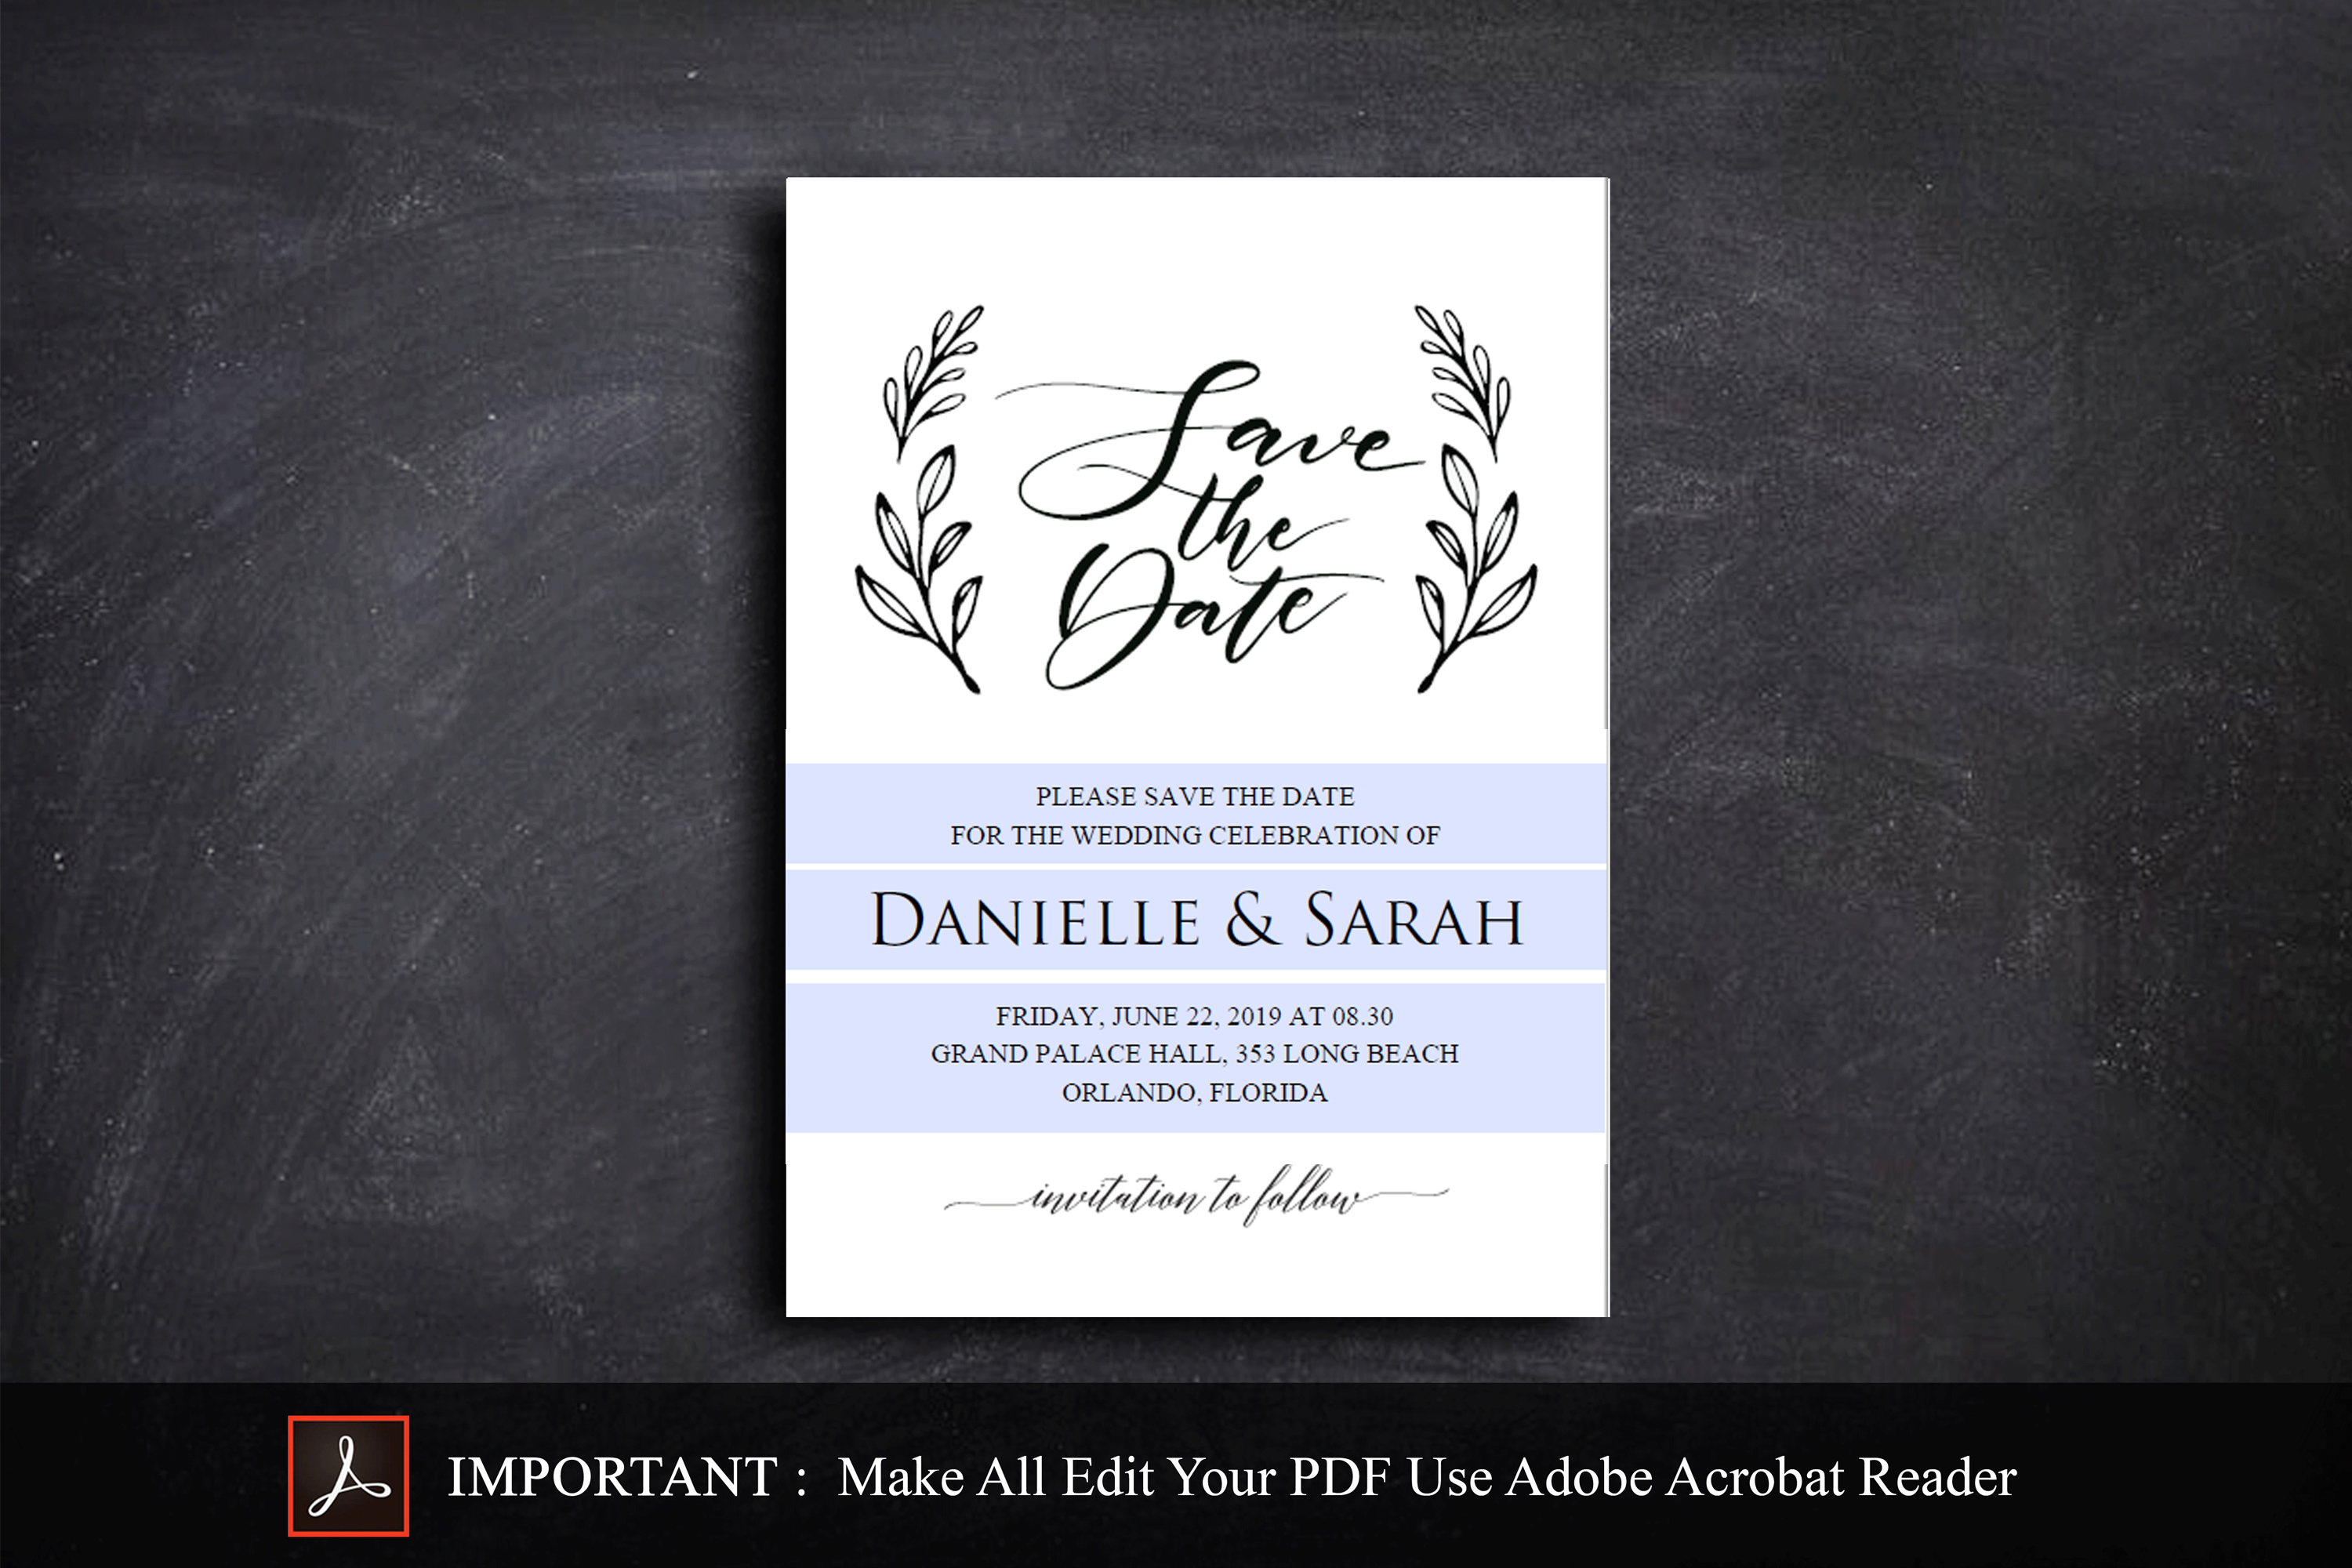 Save the Date Invitation, Save the Date Template example image 2